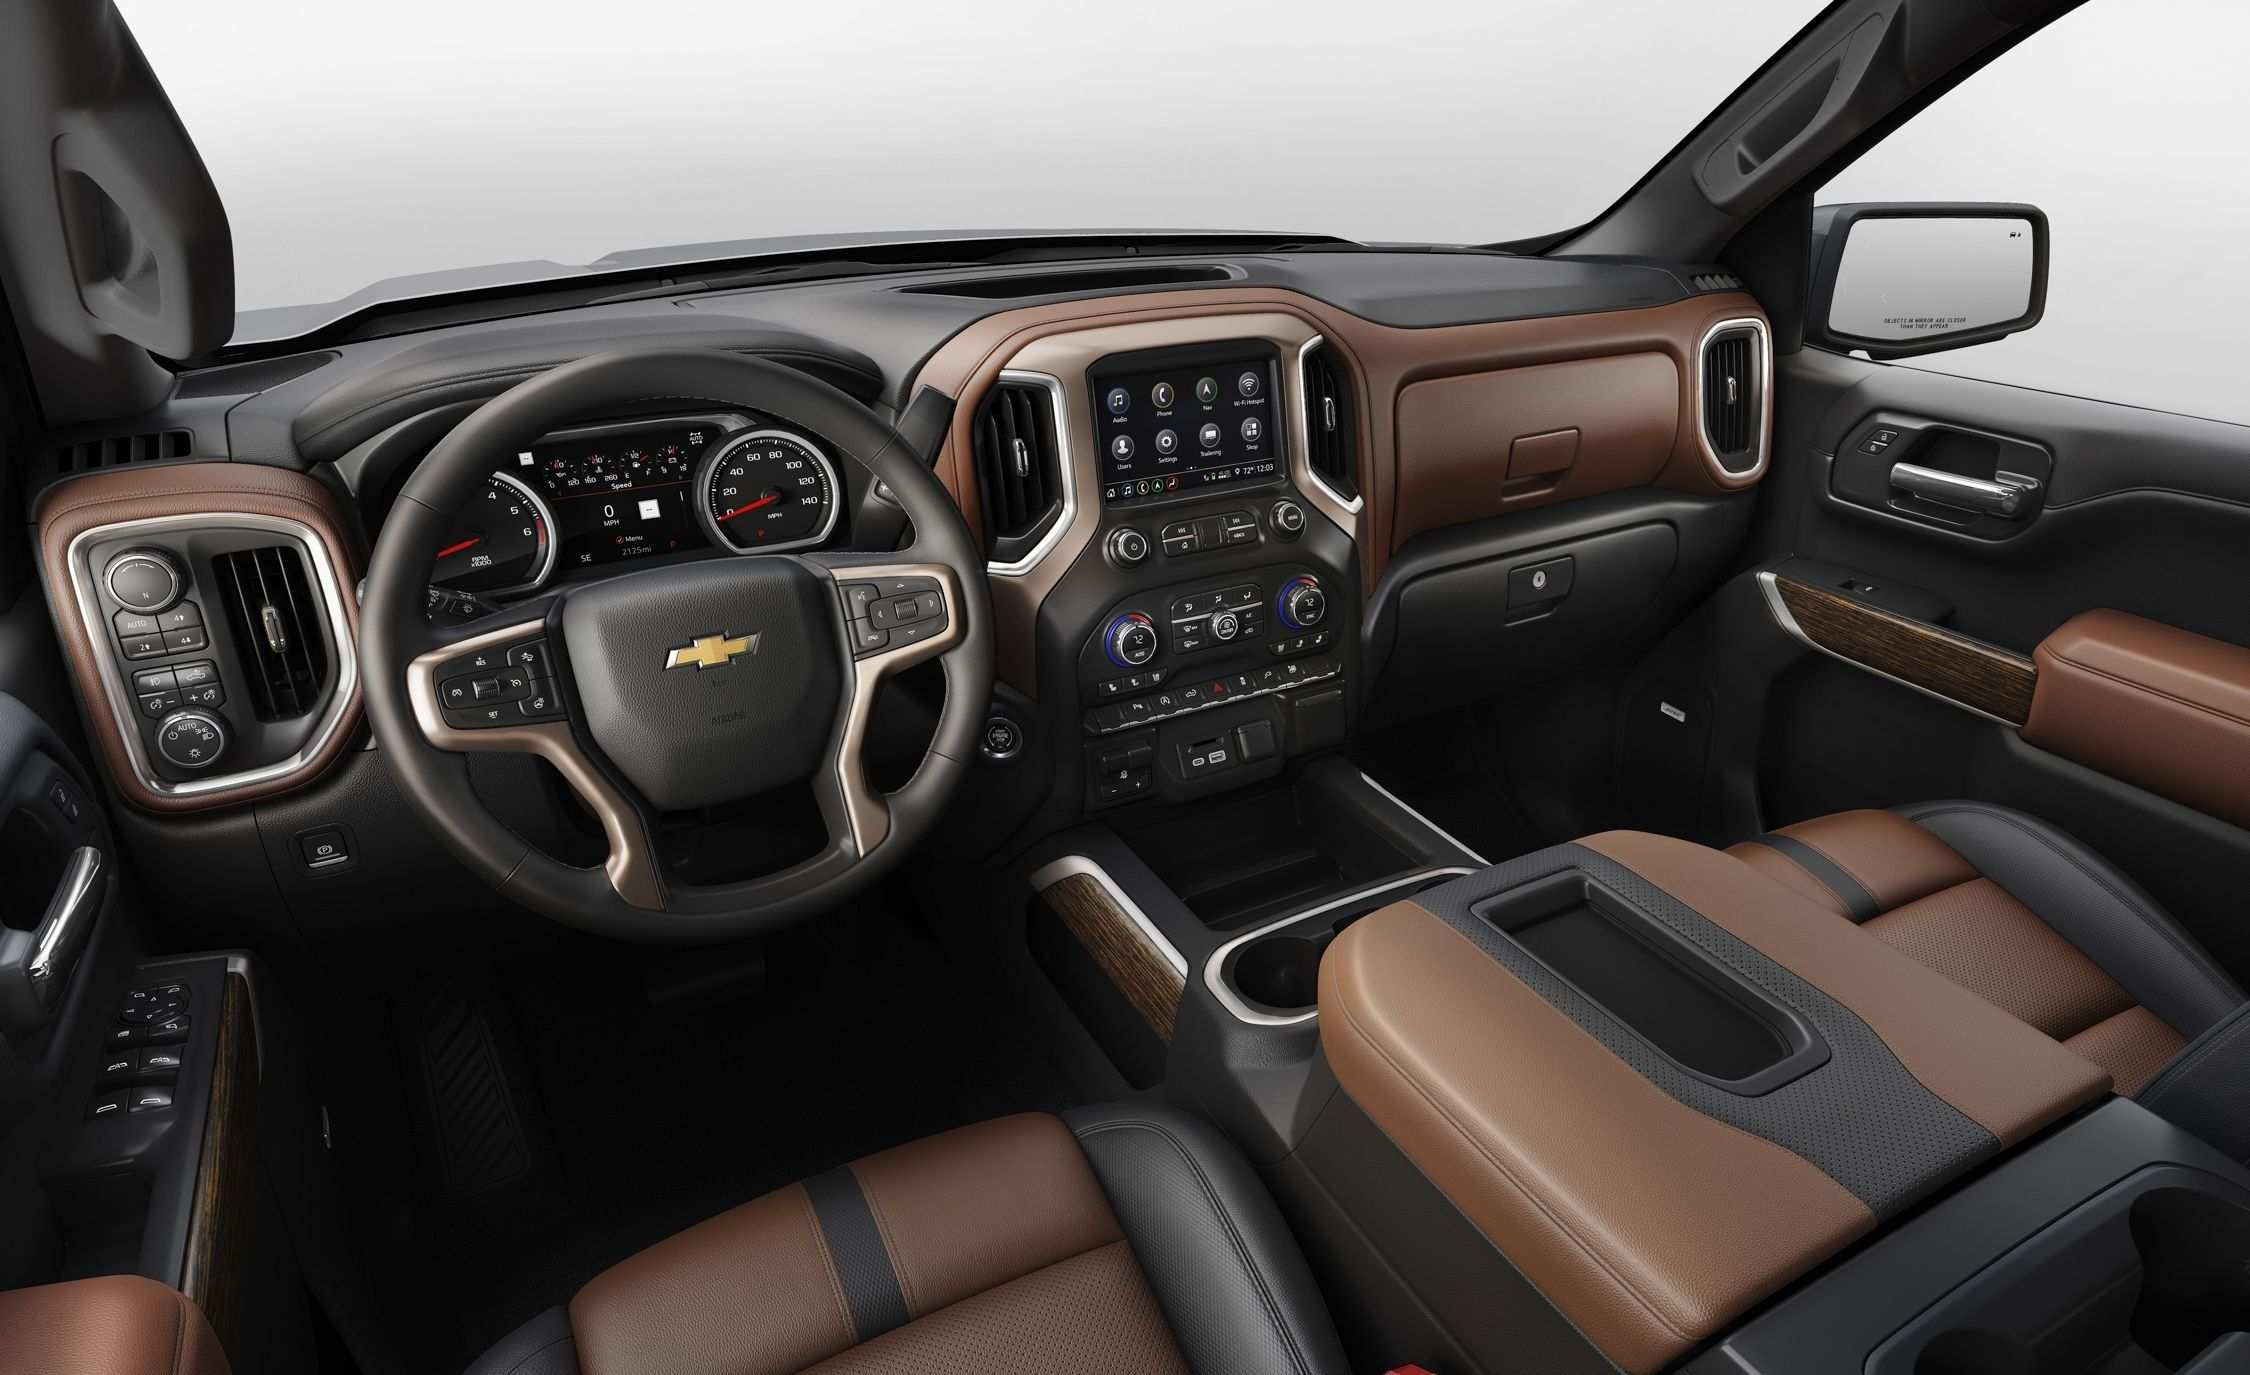 79 New Chevrolet 2019 Autos First Drive Price Performance And Review Spesification with Chevrolet 2019 Autos First Drive Price Performance And Review